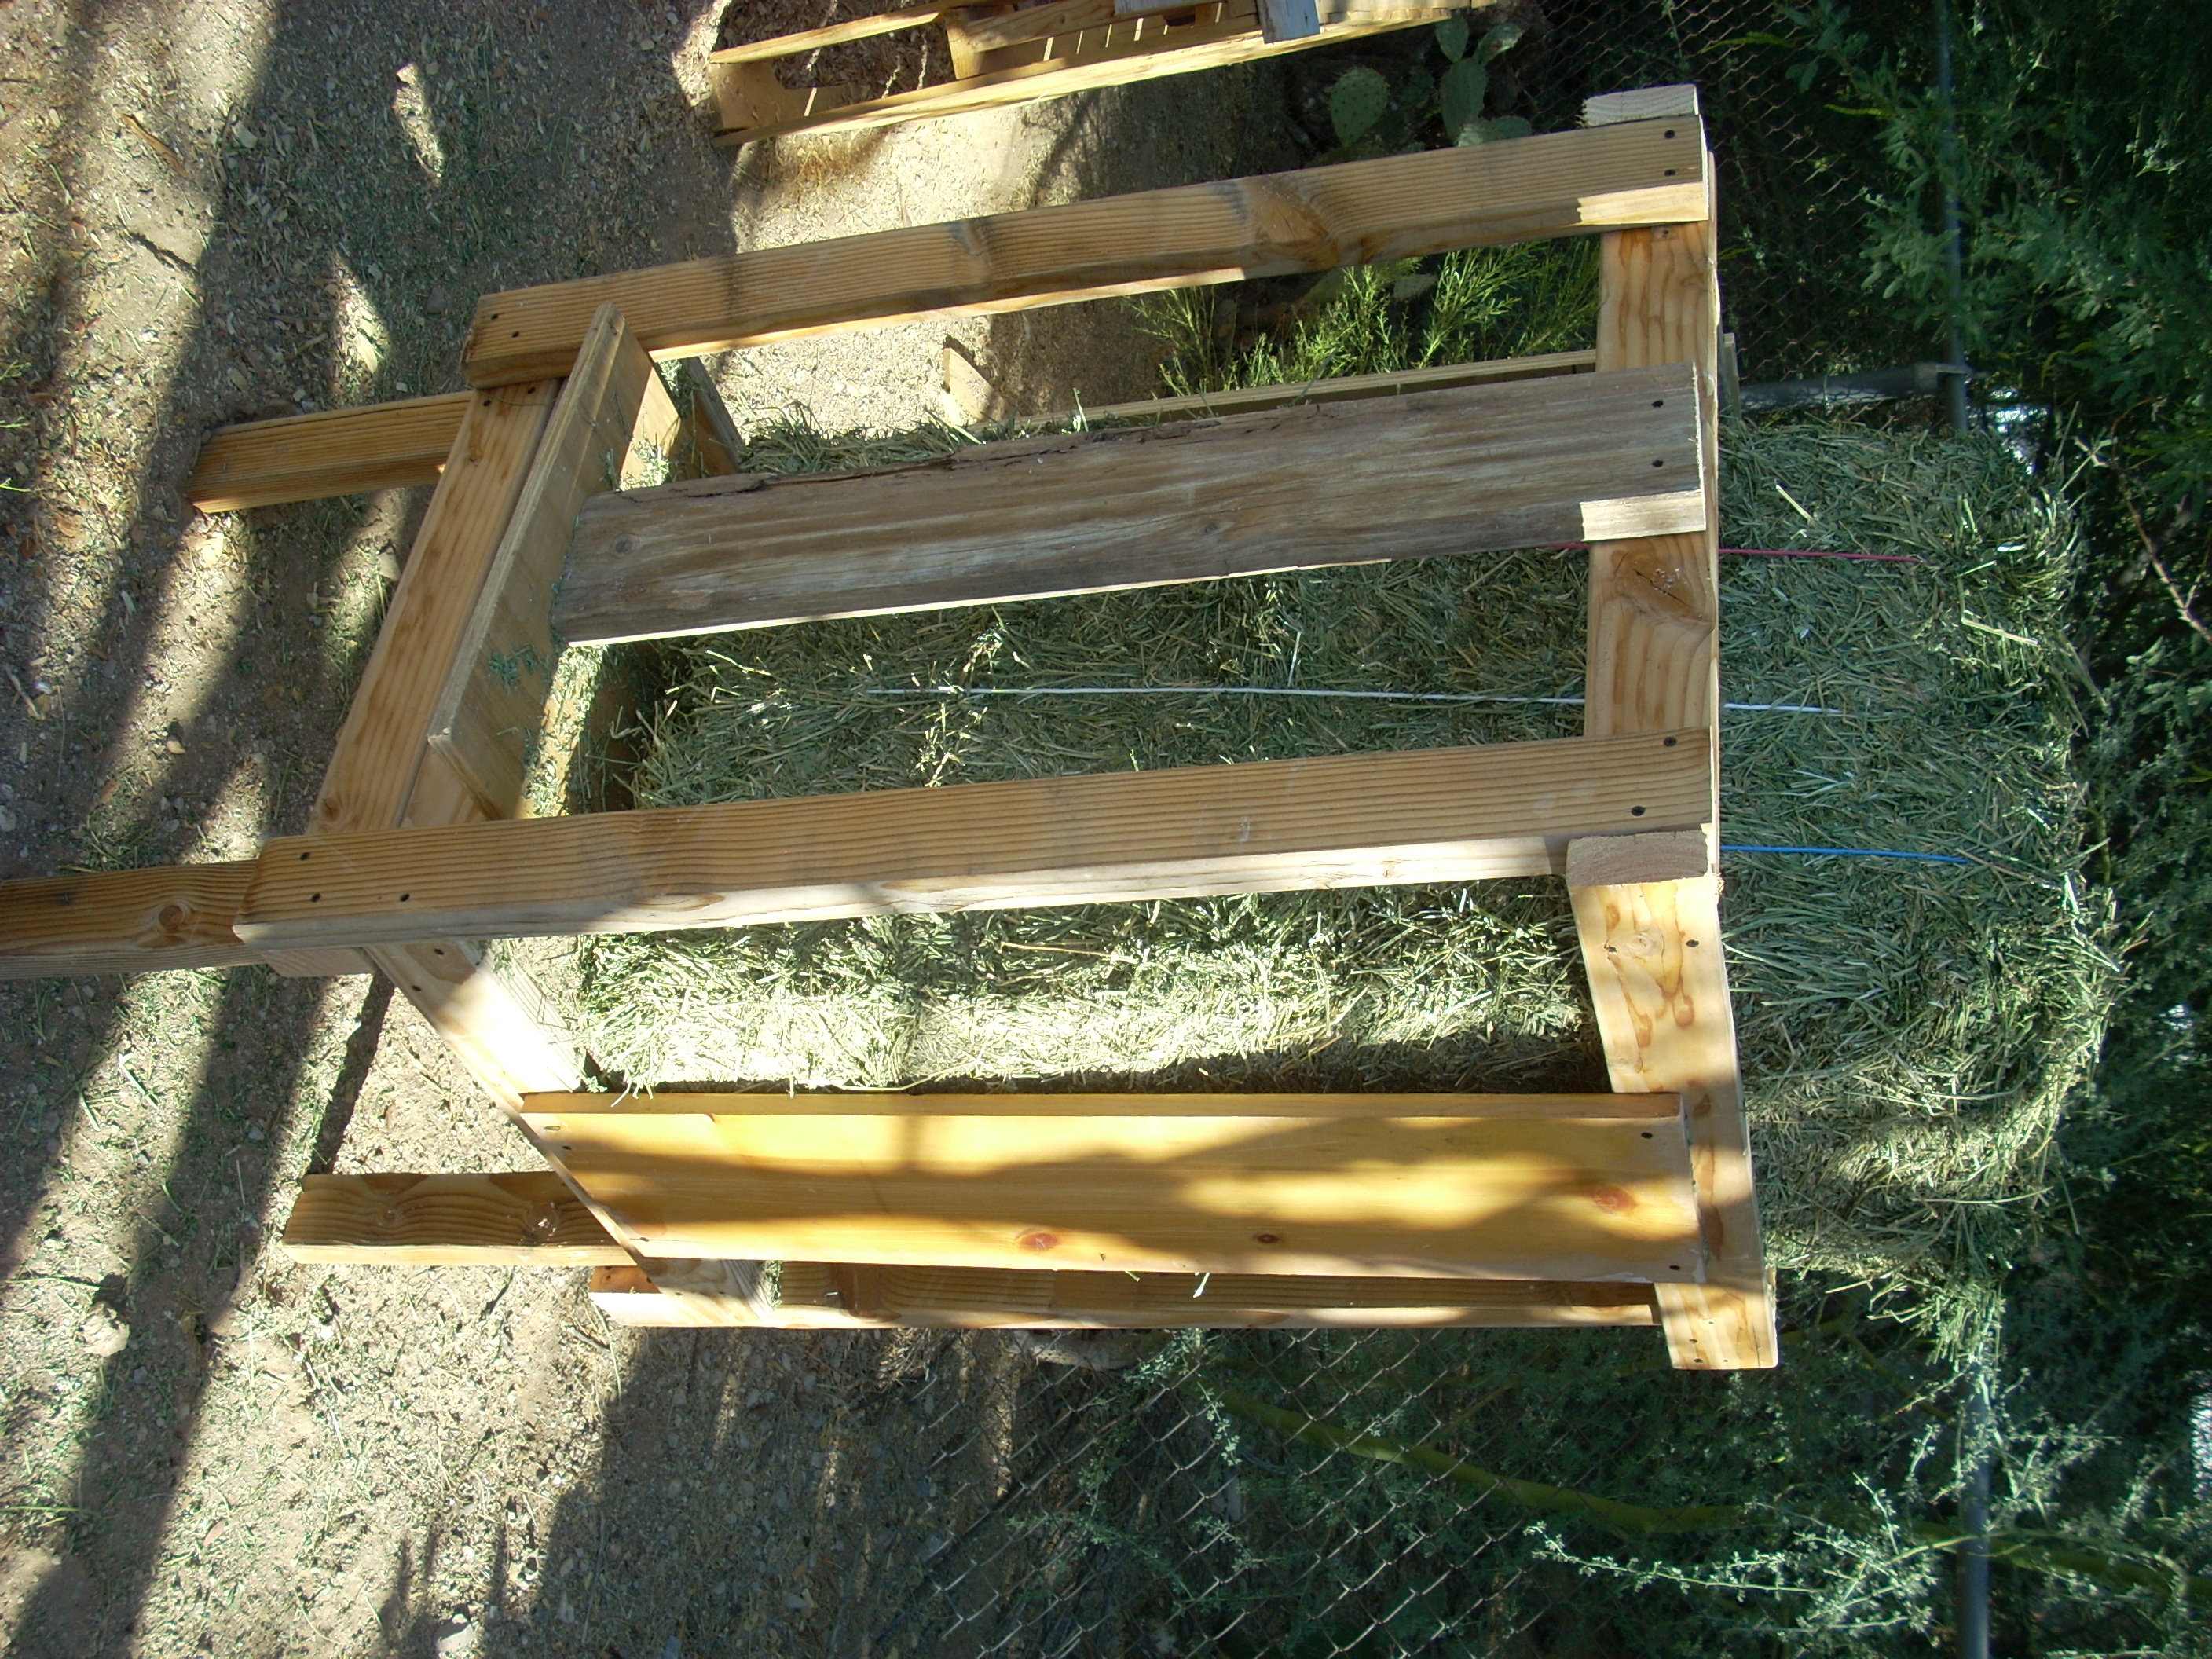 Hay Feeder Plans http://futuretribal.wordpress.com/2012/05/22/day-48-goat-feeders-and-garages/